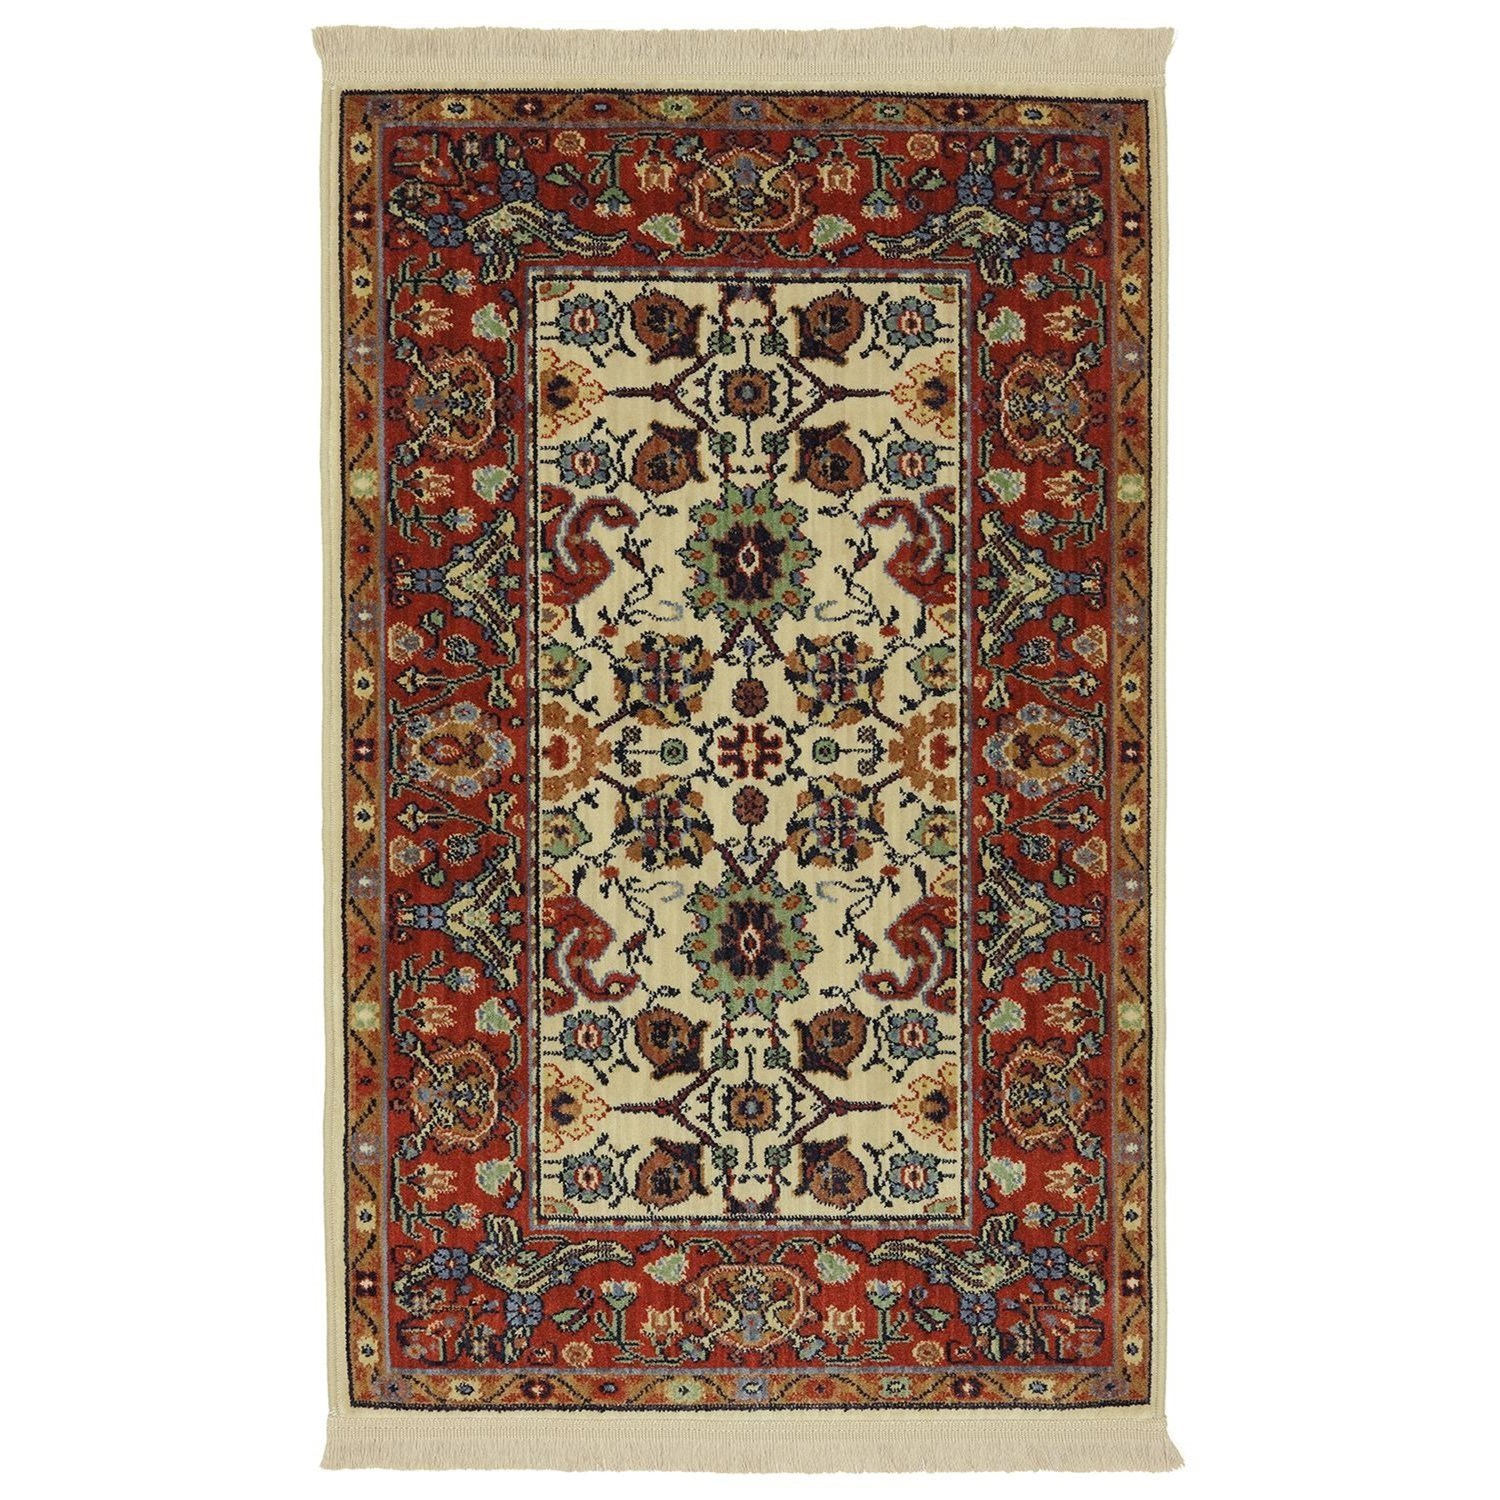 Karastan Rugs English Manor 2'6x8' Stratford Rug Runner - Item Number: 02120 00505 030096